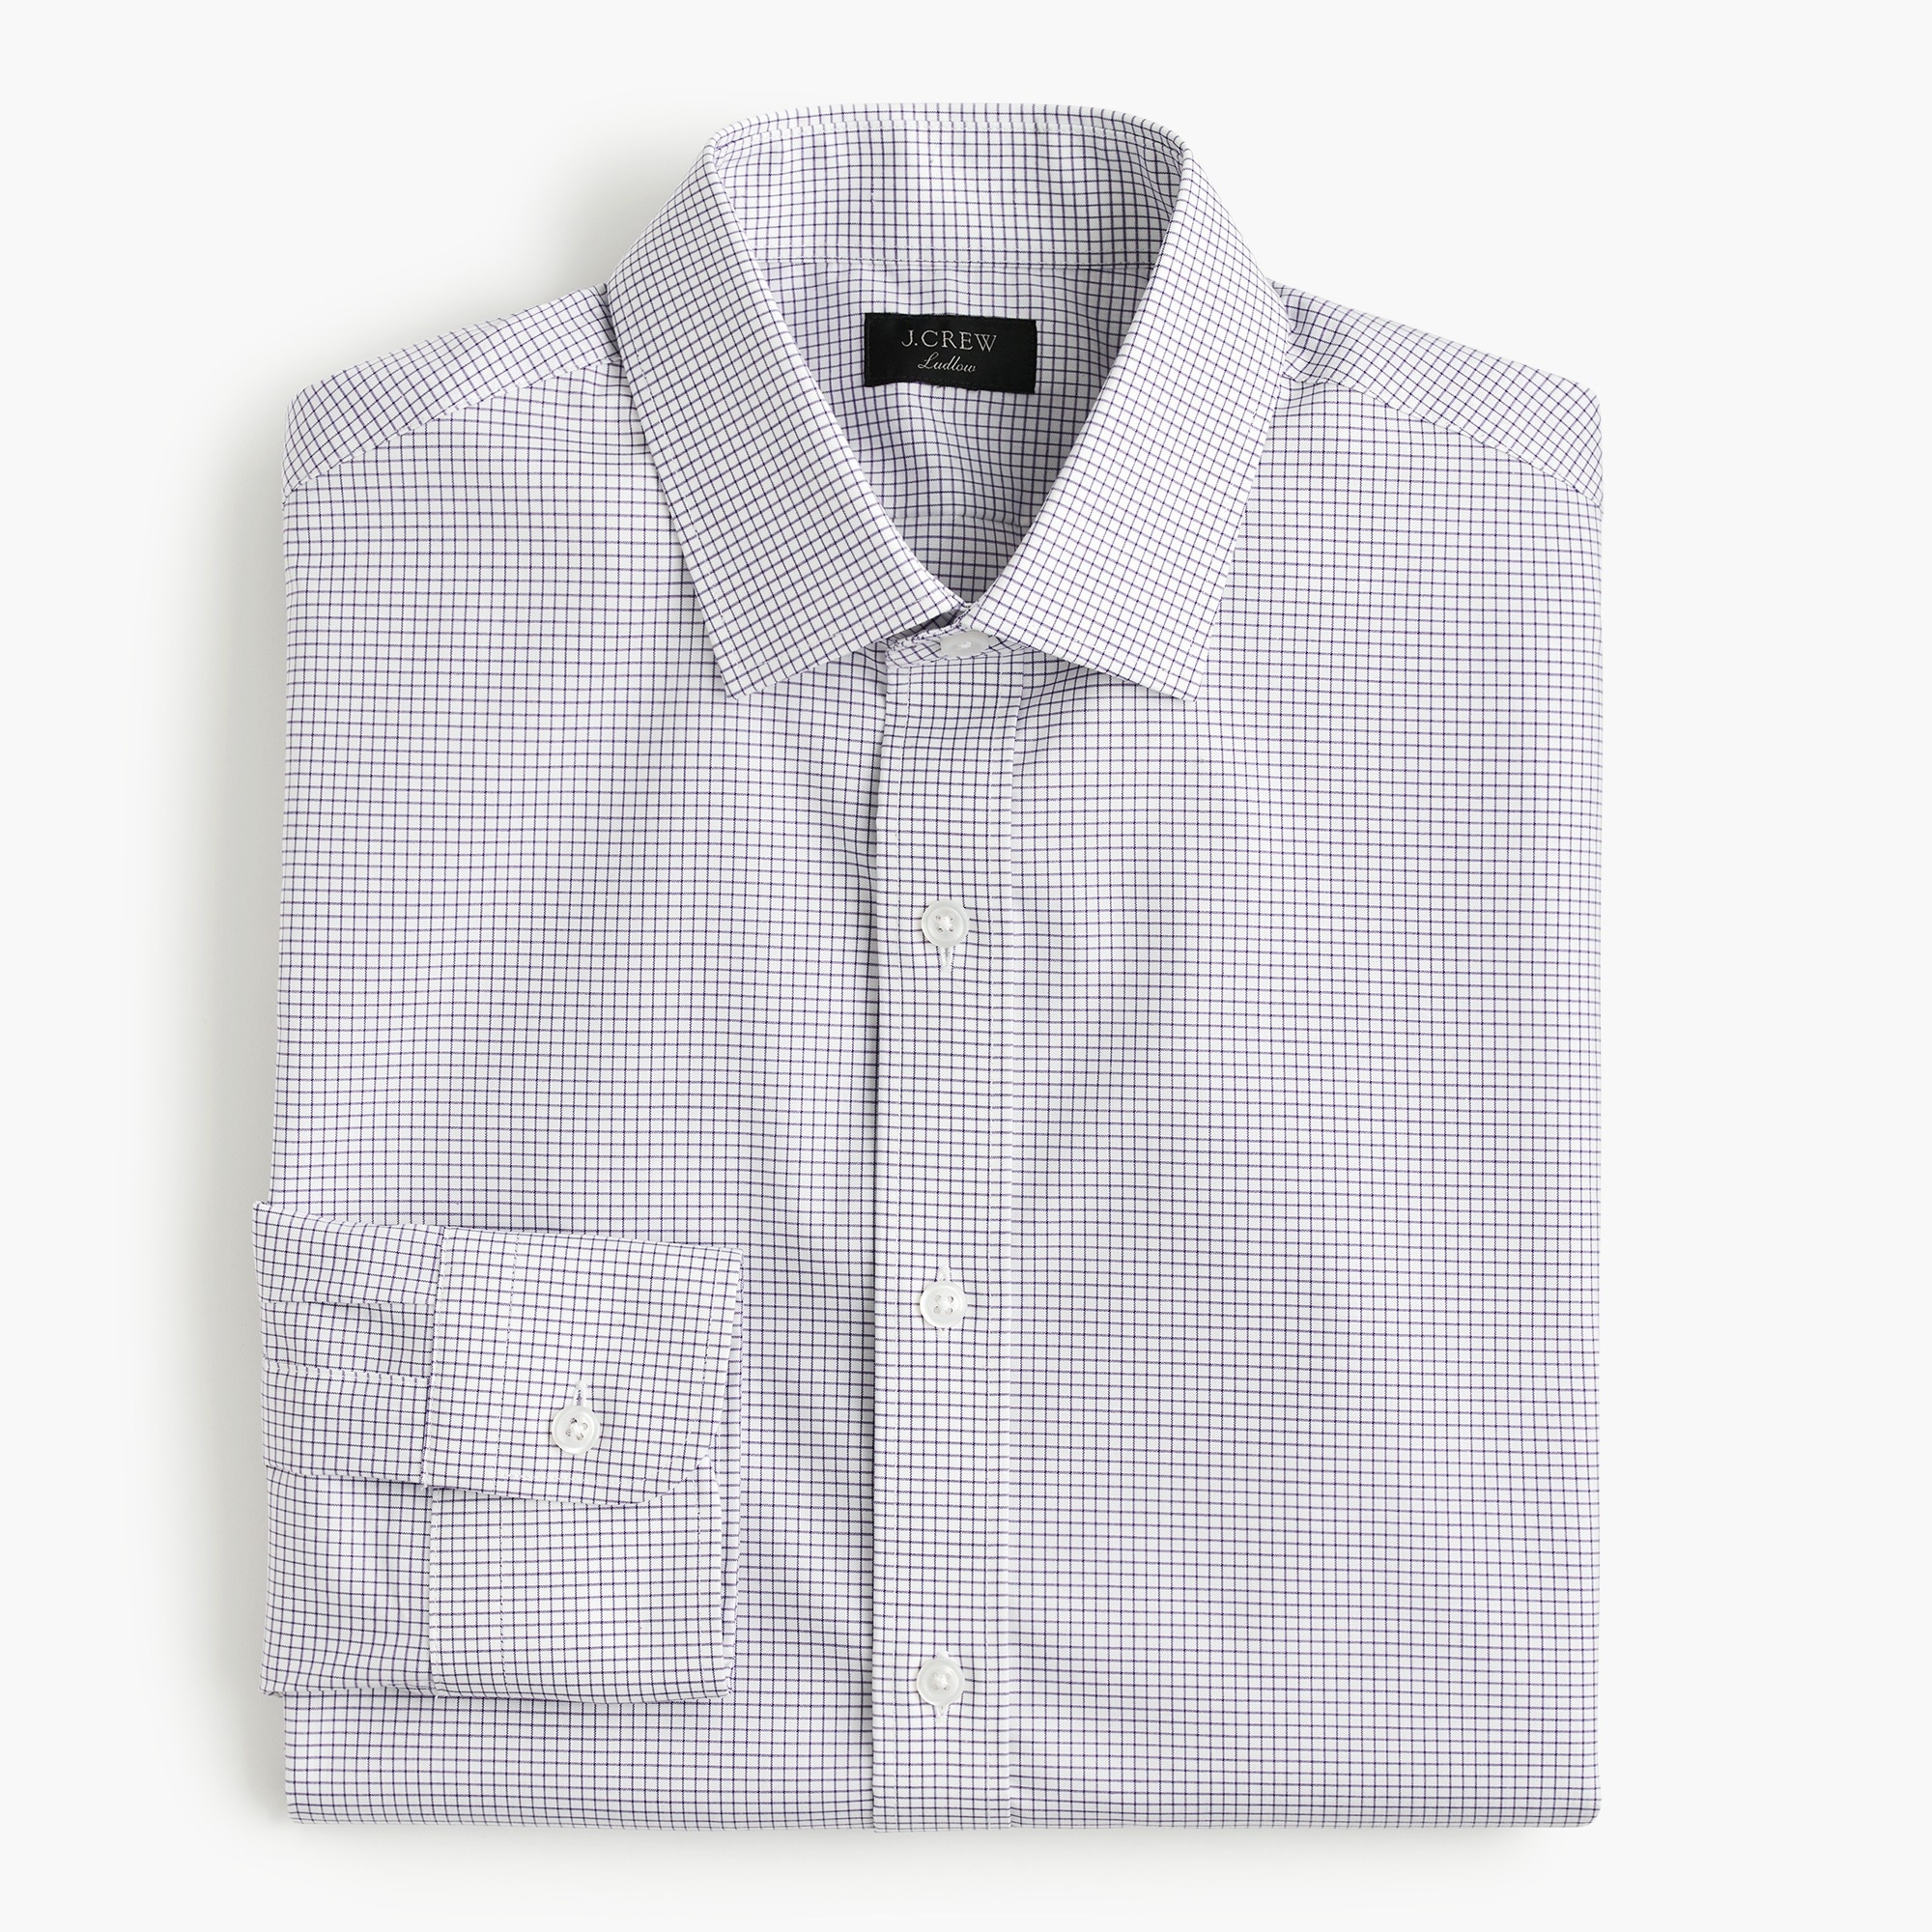 mens Ludlow stretch two-ply easy-care cotton dress shirt in microcheck